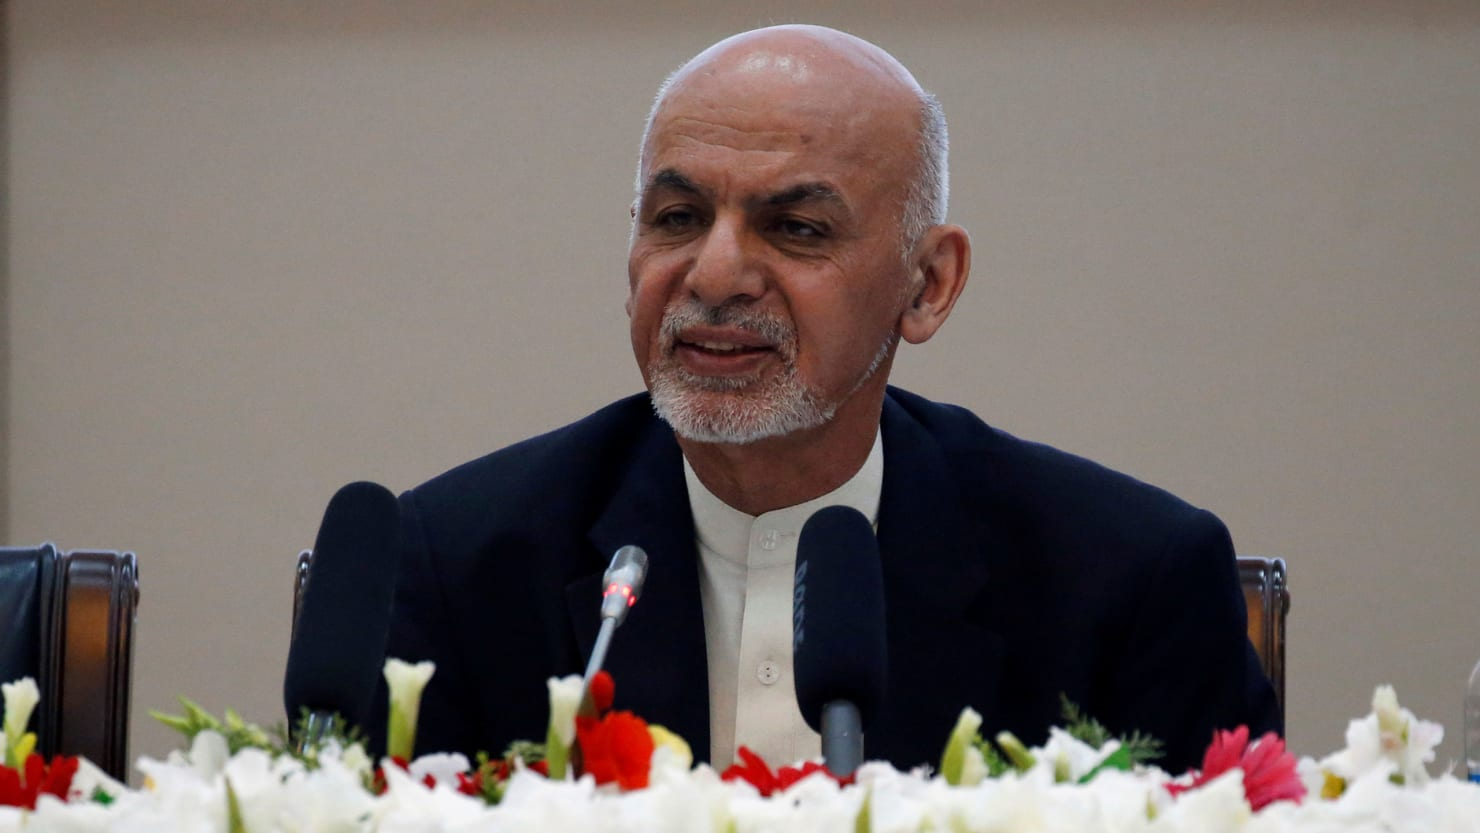 Afghan President Ashraf Ghani speaks during during a peace and security cooperation conference in Kabul, Afghanistan on February 28, 2018.